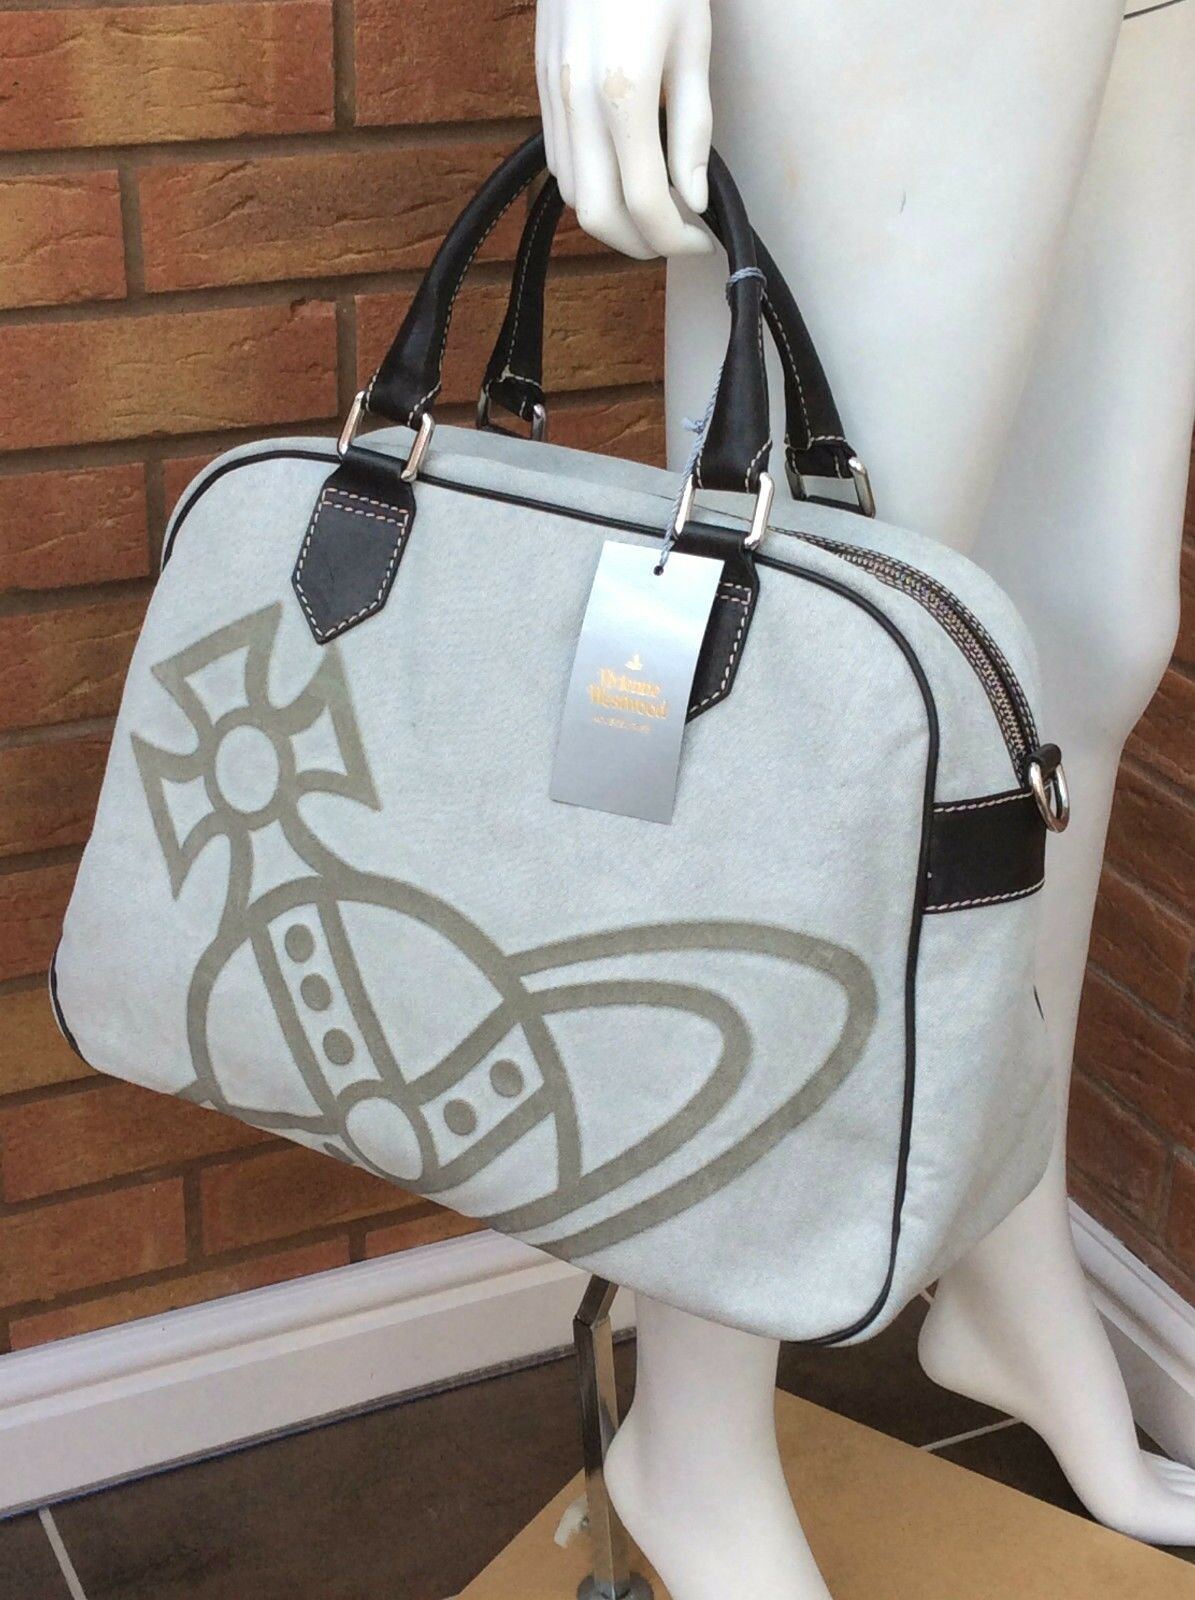 93d1d07823 Vivienne Westwood Large Iconic Orb Tote Overnight Bag Retail Made in Italy  for sale online